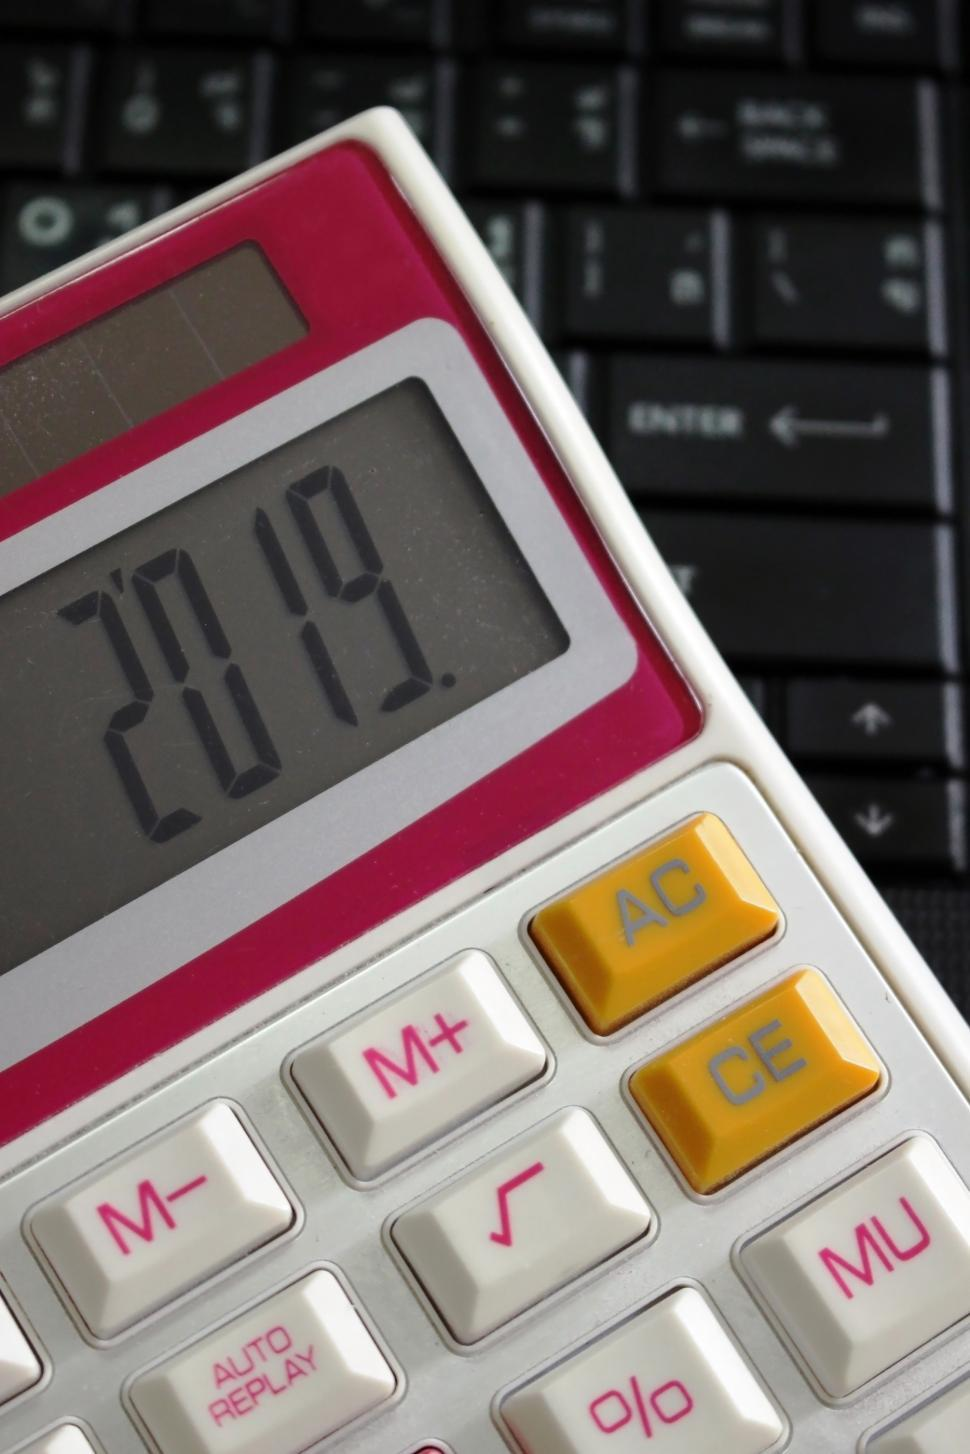 Download Free Stock HD Photo of 2019 on a Calculator Screen on a Computer Keyboard  Online